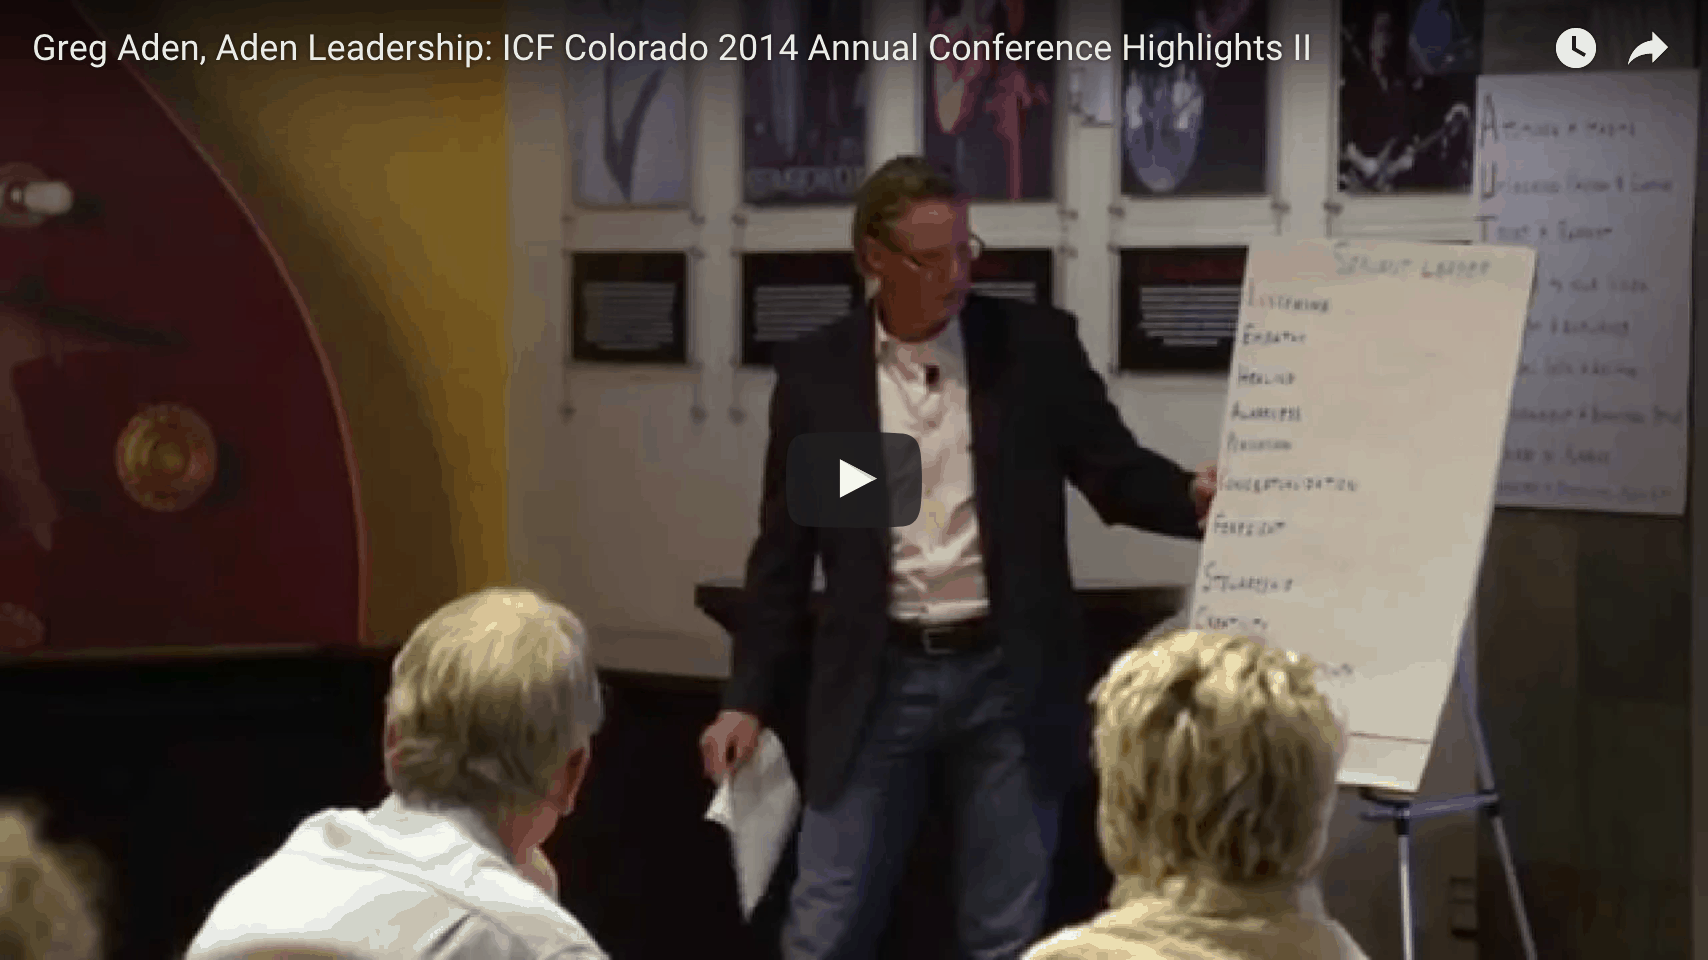 [VIDEO] ICF Colorado 2014 Annual Fall Conference: Unleashing the Authentic Leader Within